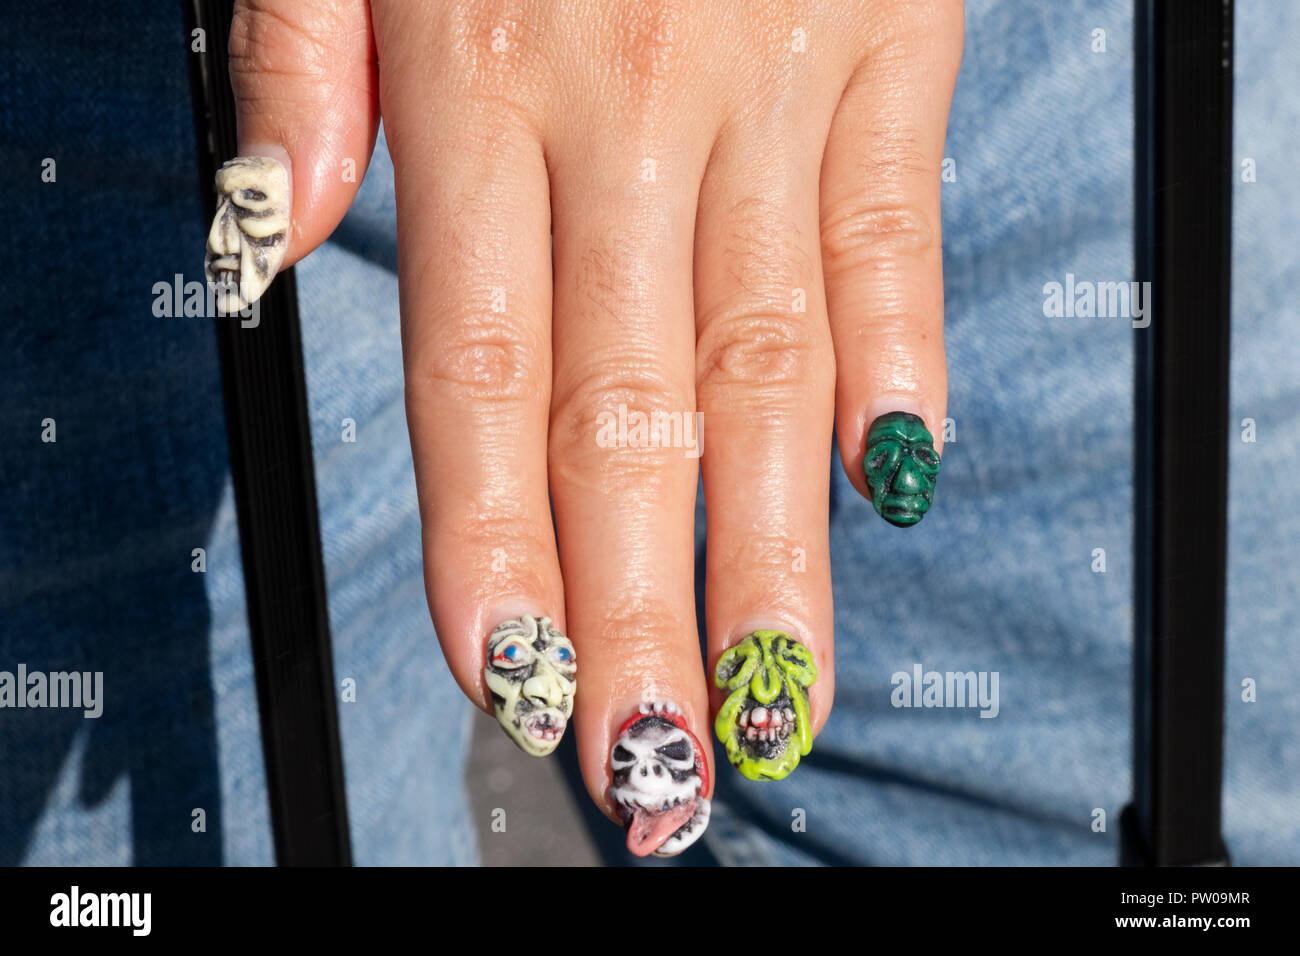 3D NAILS. Nail Artist and stylist Elina Ogawa designed these three dimensional nails and shows then on her left hand. In Manhattan, New York City. - Stock Image